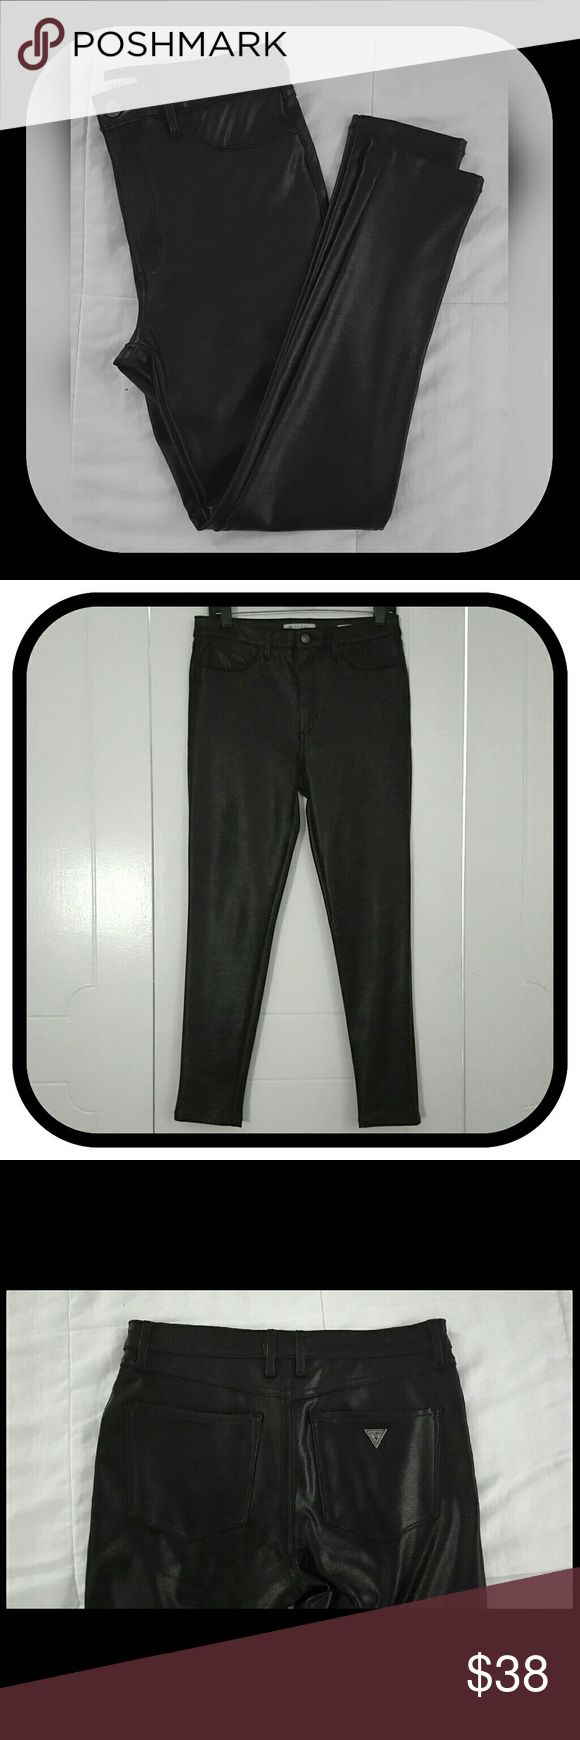 Men's Guess Marciano Pleather Skinny Pants These pants are immaculate. Never worn but without tags. Made by Guess. Size 30 in men's but would easily first a woman size 28 to 30. These pants are very soft and well made. The fabrication feels substantial. Inside is soft knit. These pants have a great stretch. Tapered legs. Faux pockets in front, full back pockets. Silver Guess logo on back pocket. Guess by Marciano Pants